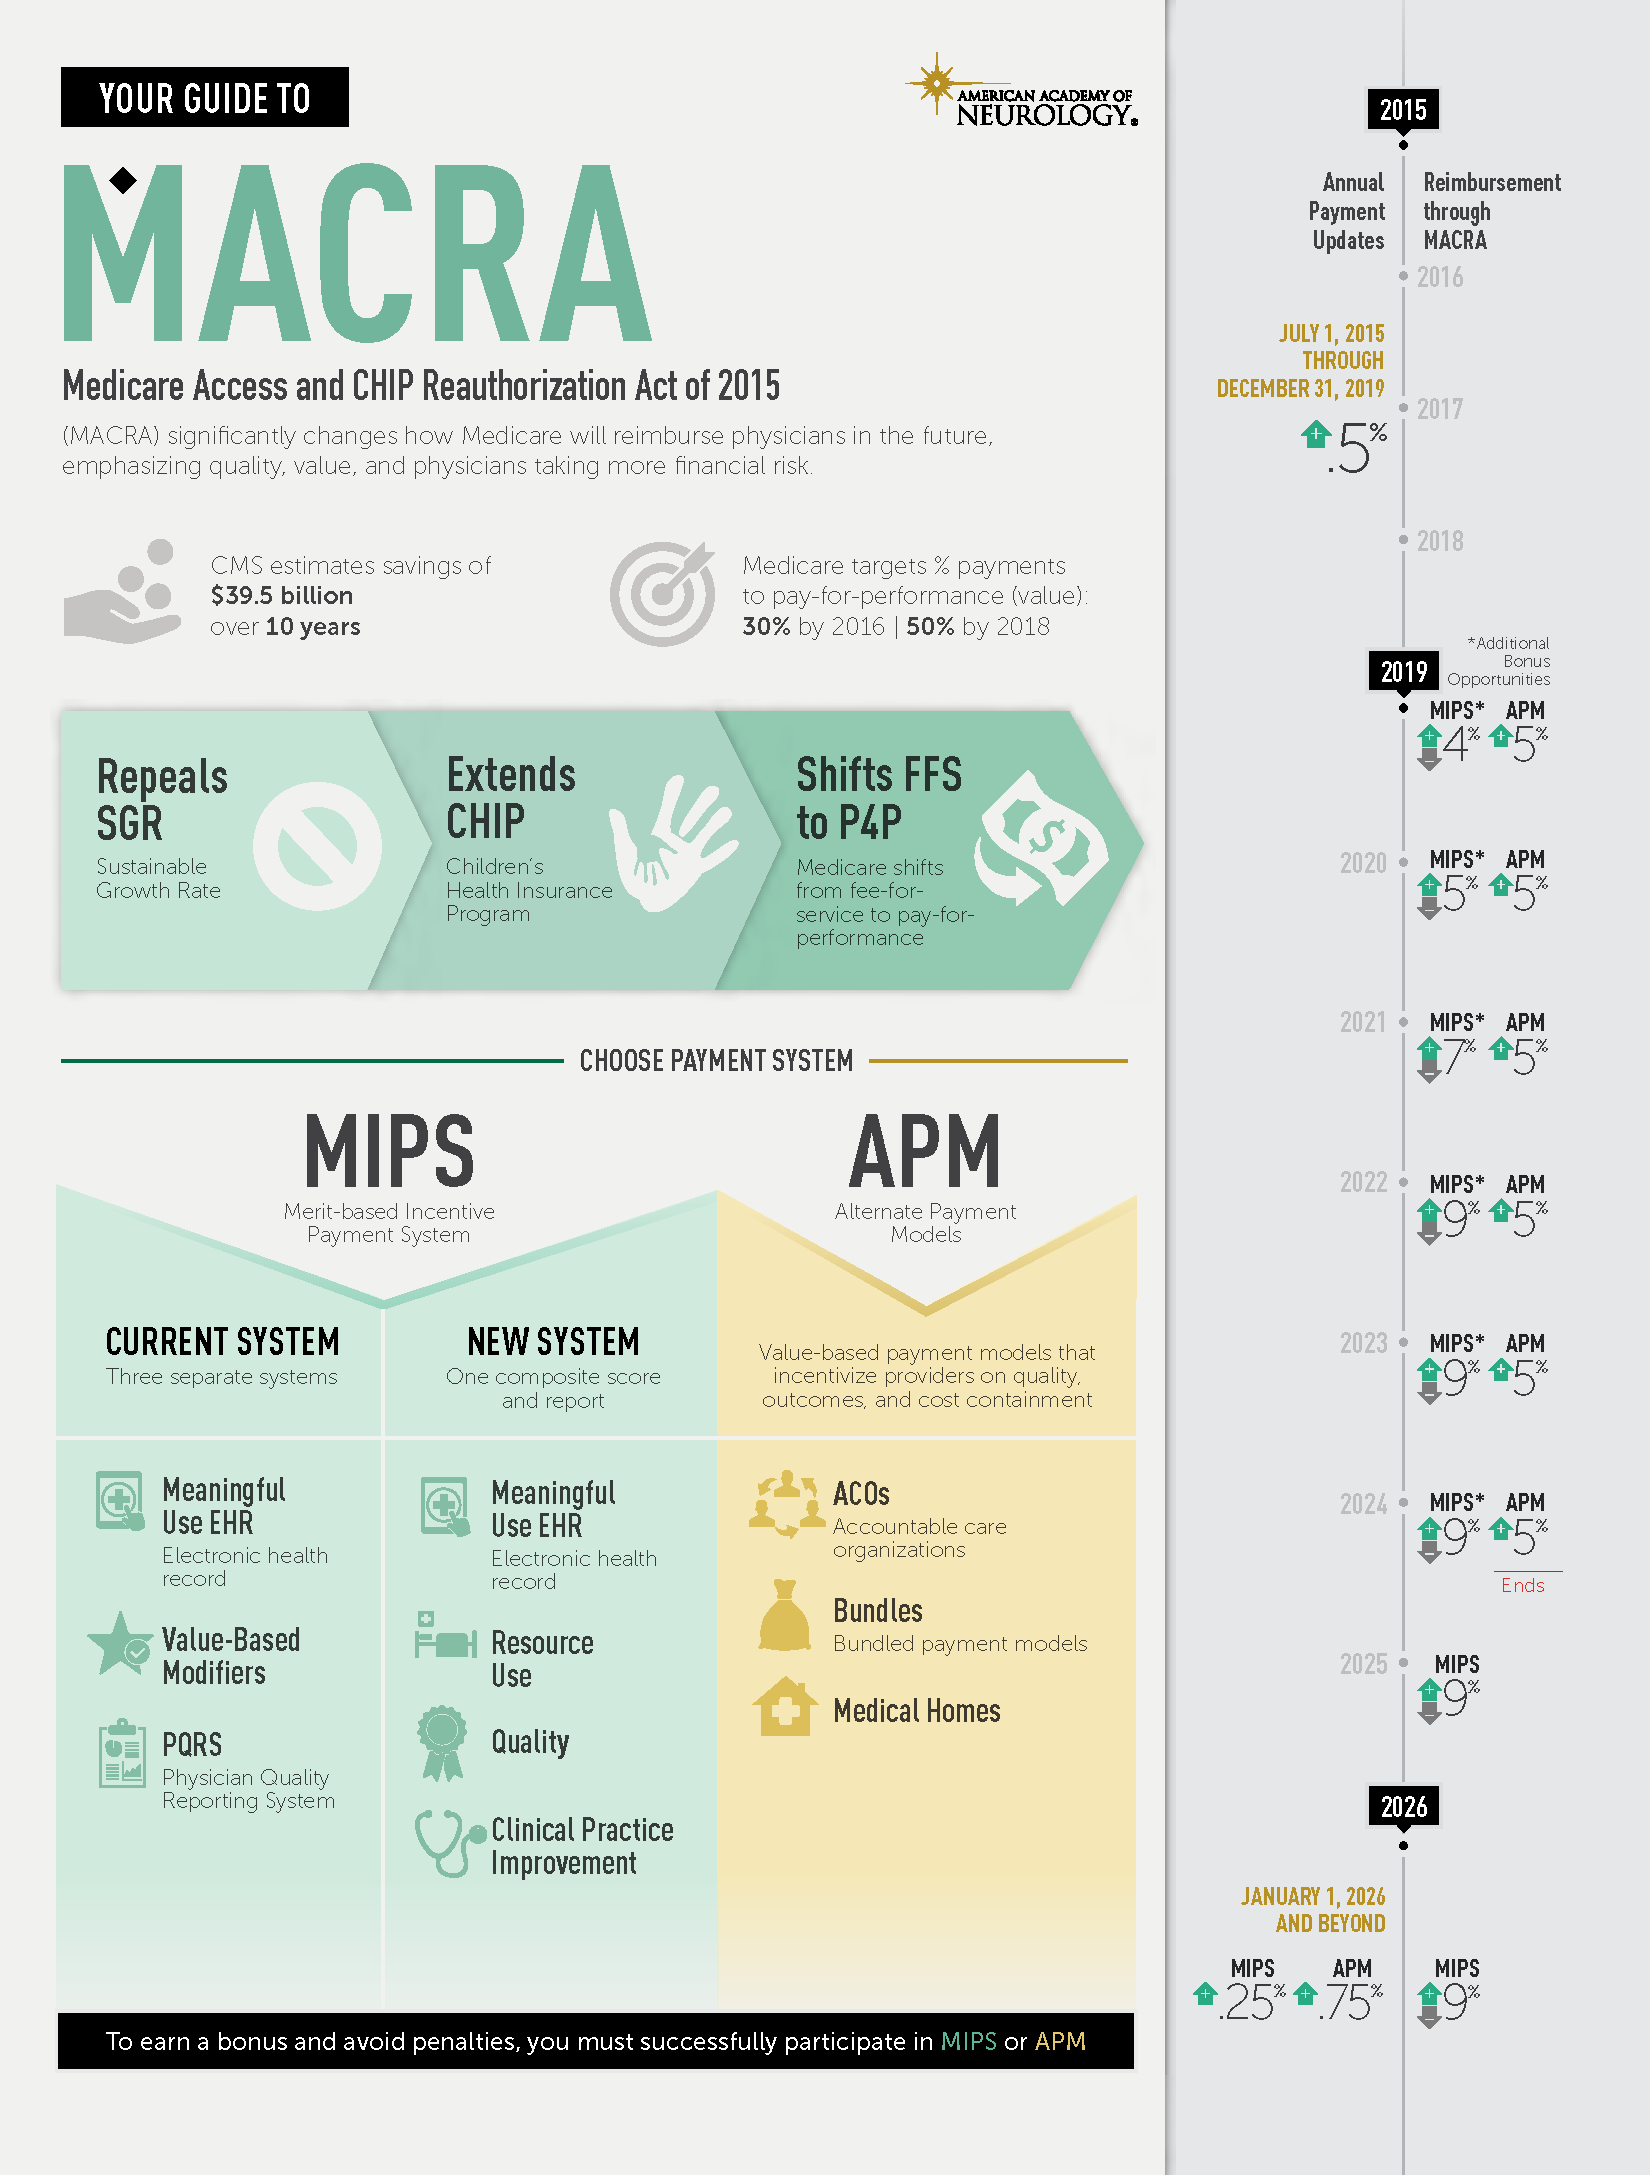 15_MACRA_Infographic_v507.png